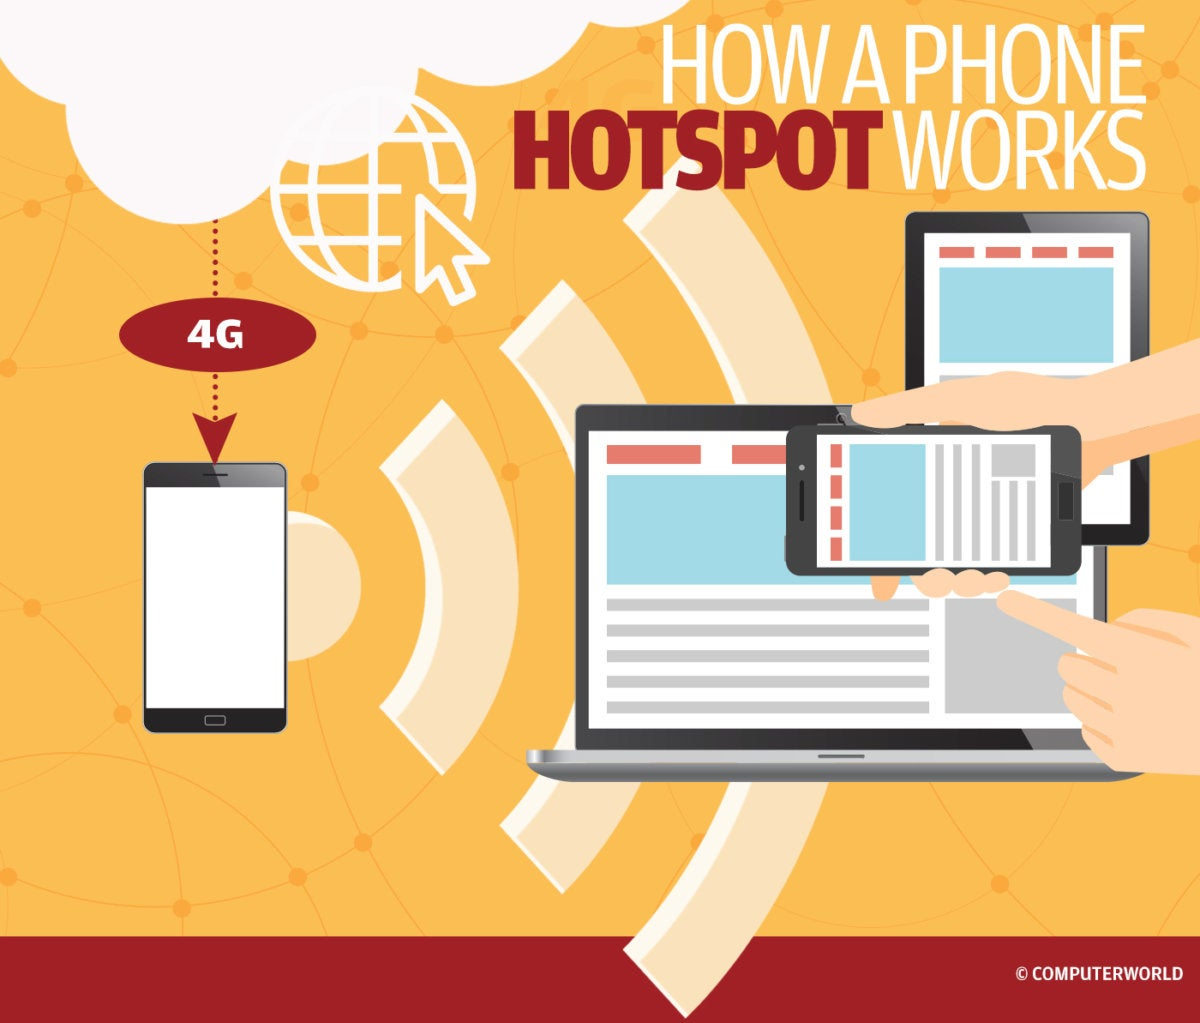 How a phone hotspot works_chart